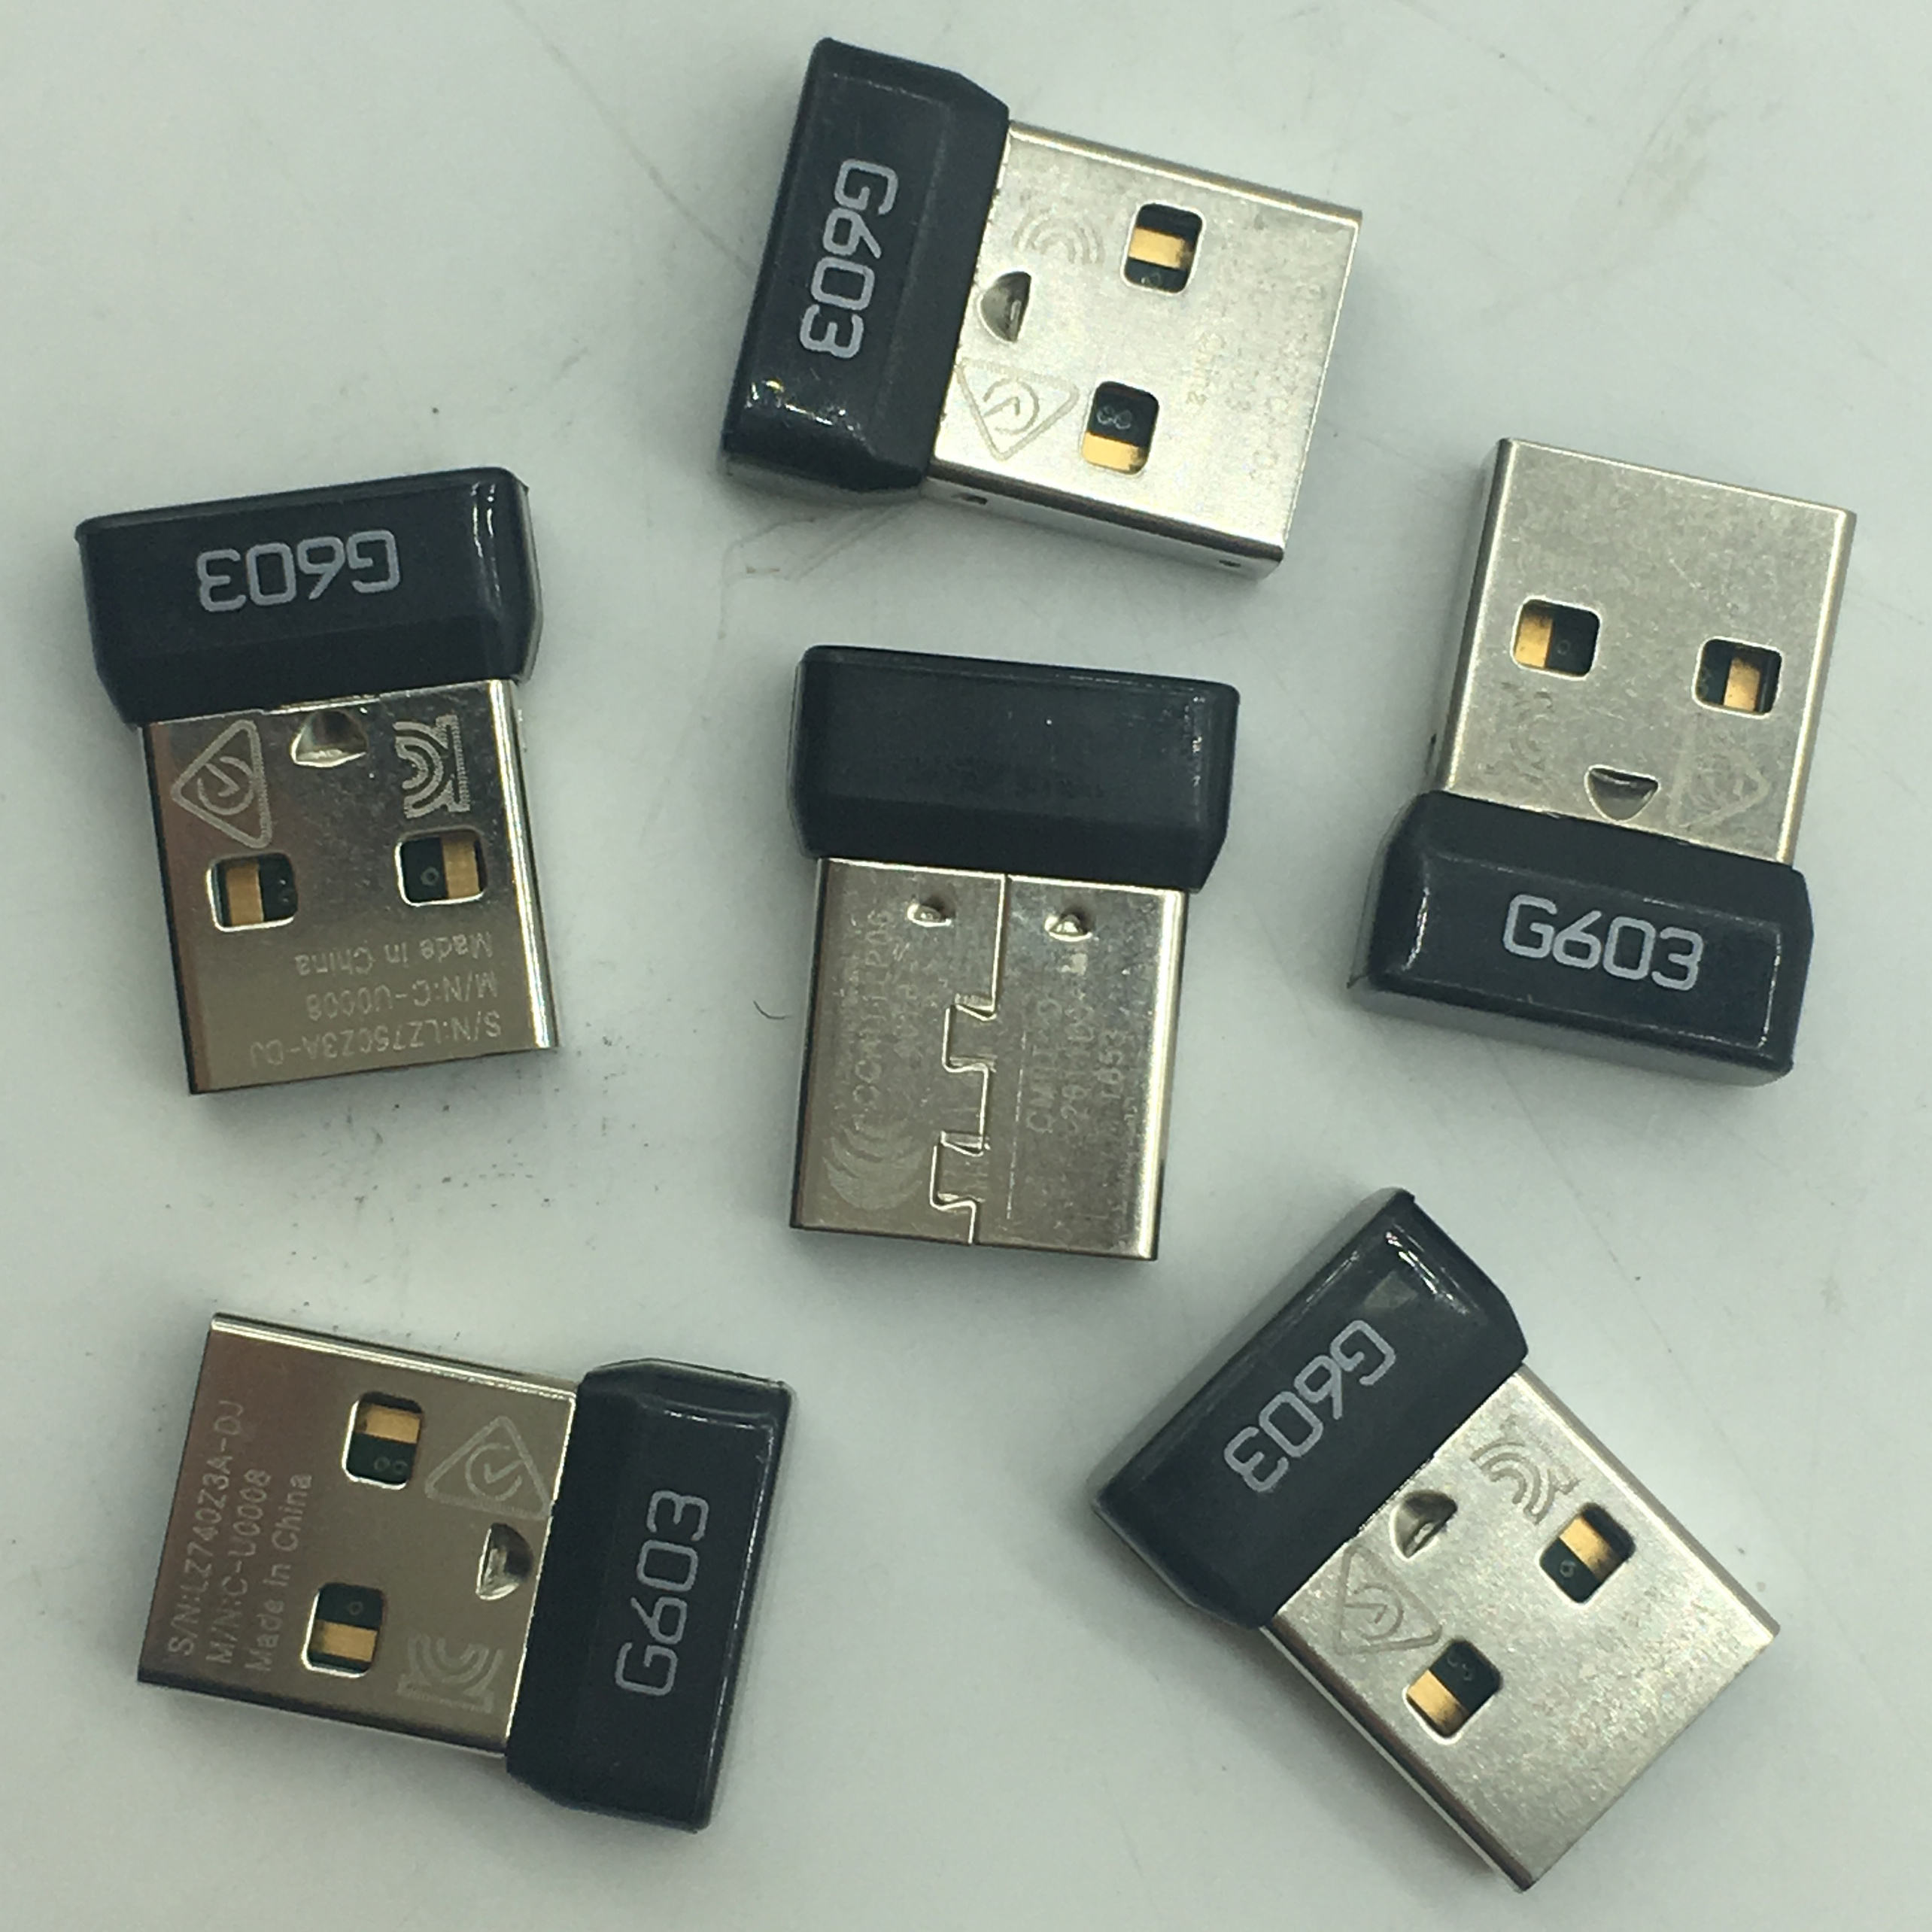 Logitech G603 Dongle Receiver Asli USB Receiver USB Bluetooth Receiver Adaptor untuk Logitech G603 Mouse Nirkabel Adaptor